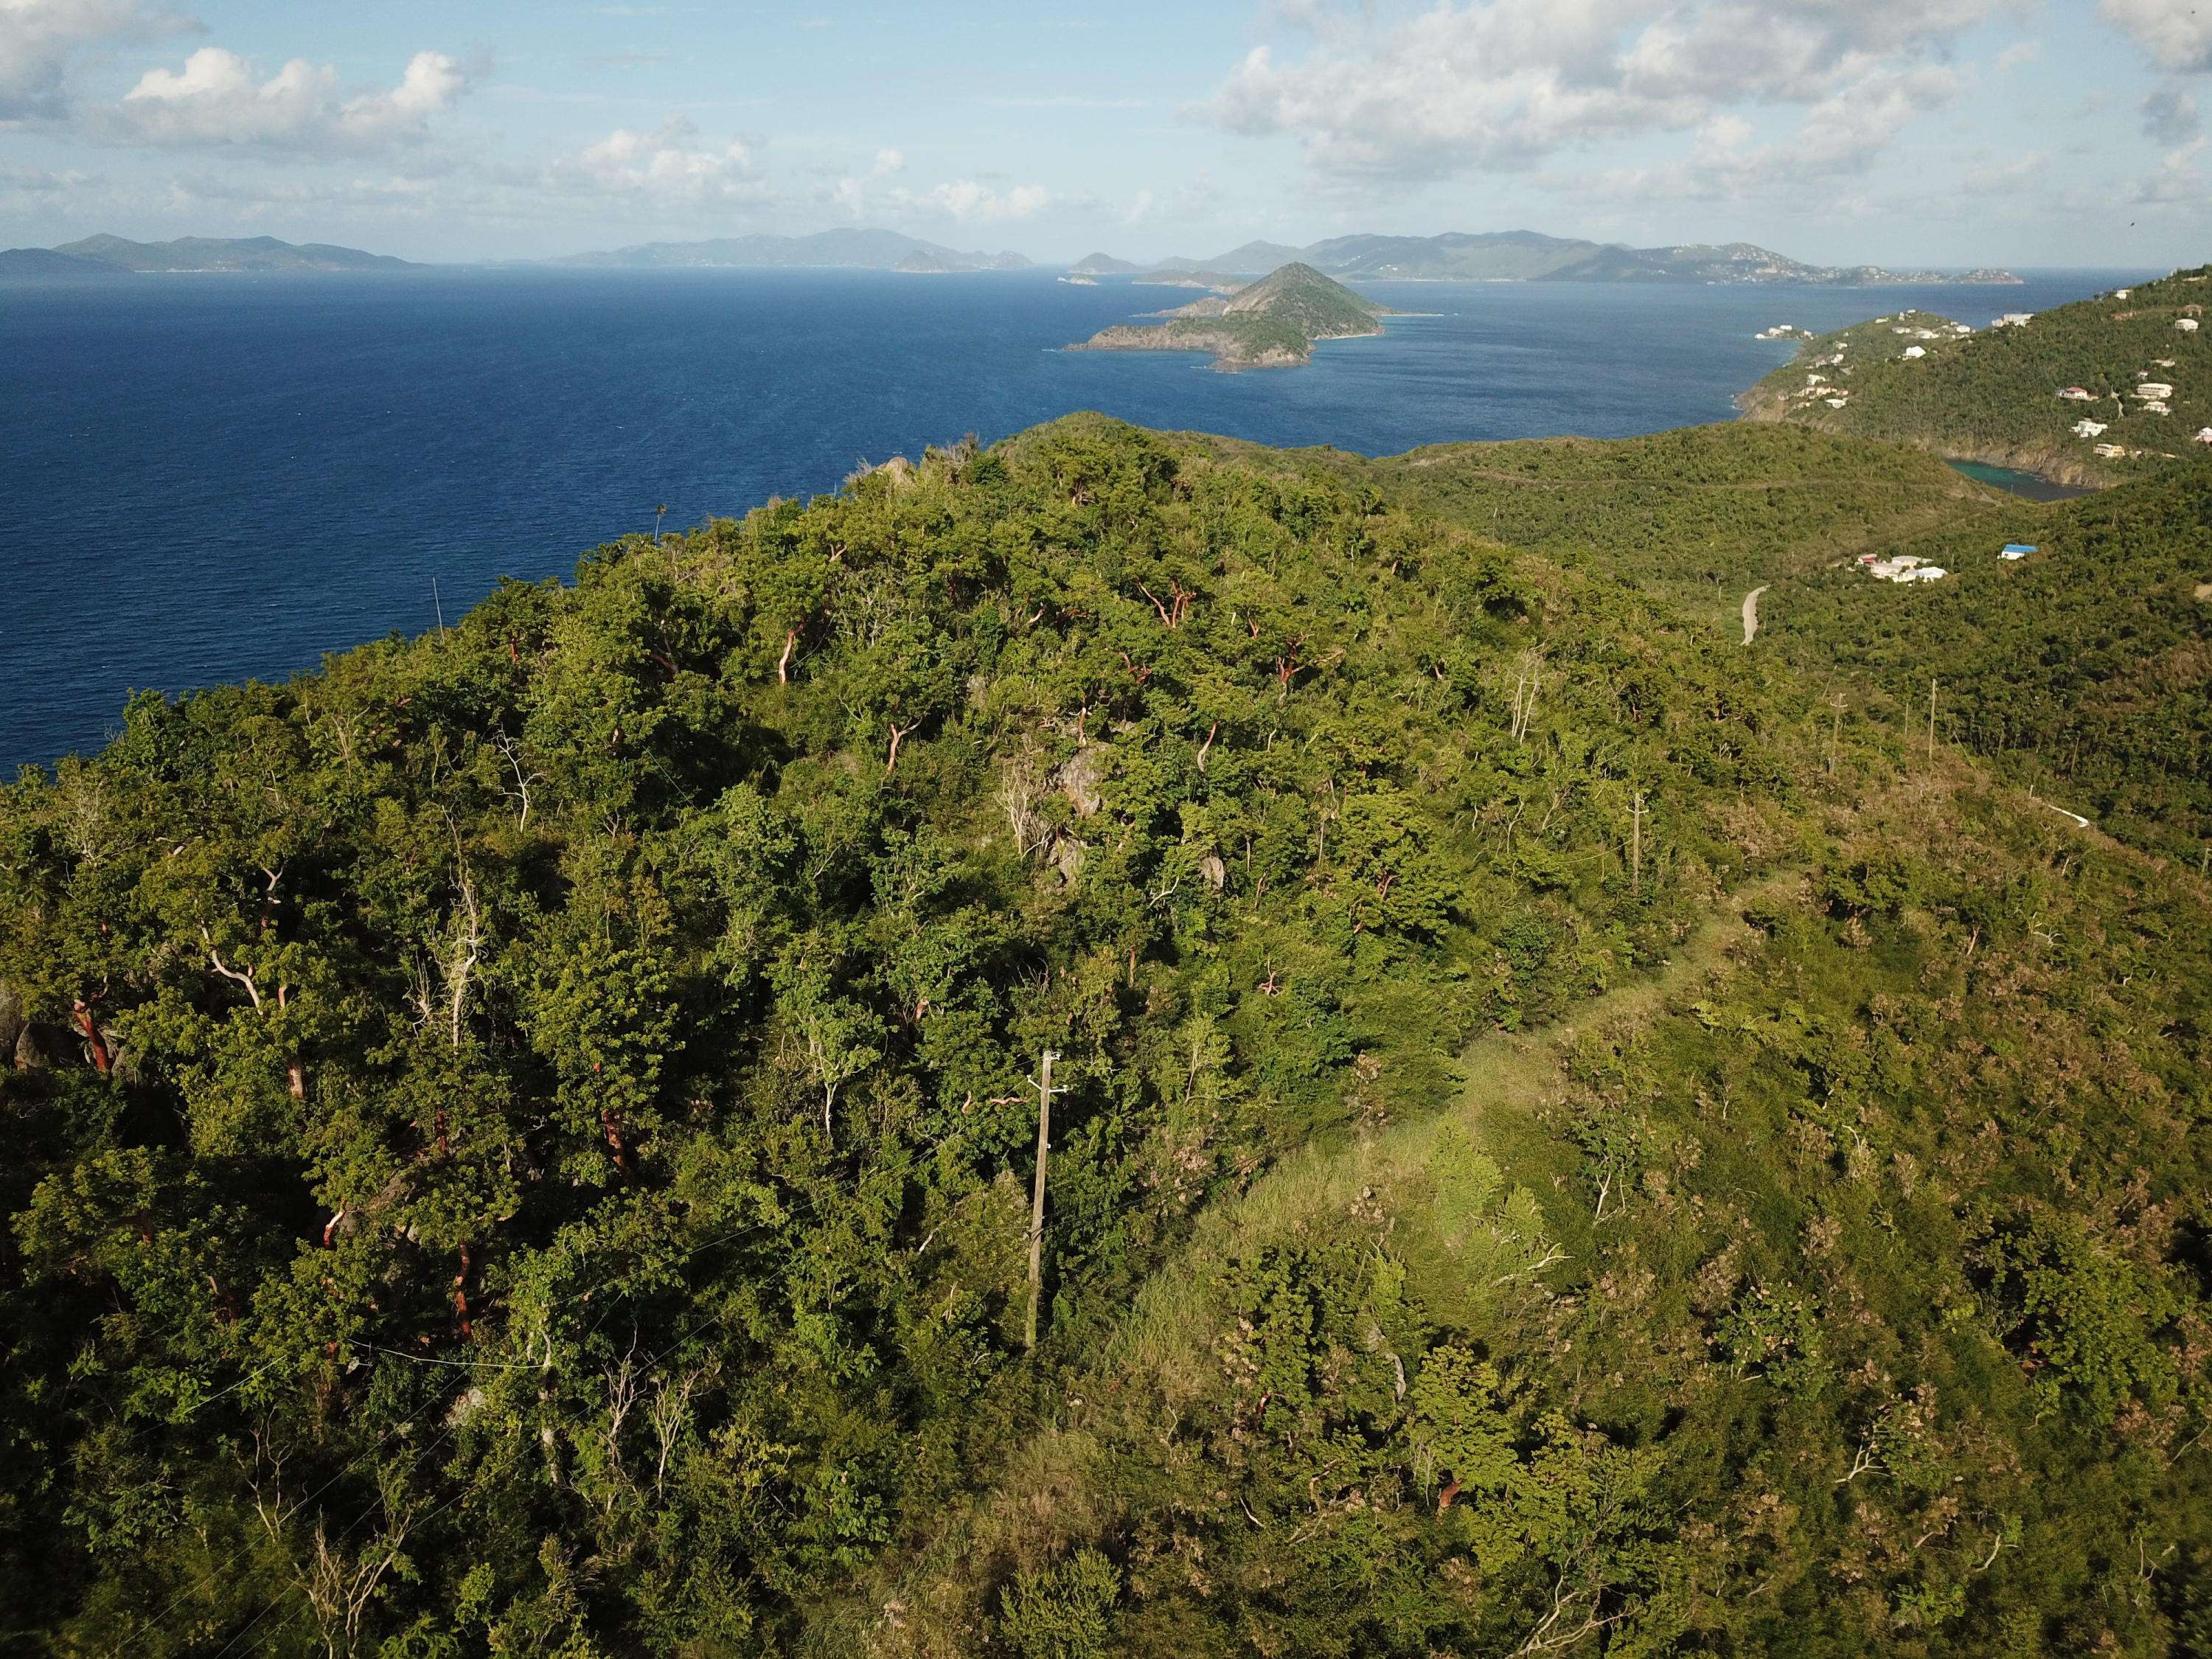 Additional photo for property listing at C-48 Lovenlund GNS C-48 Lovenlund GNS St Thomas, Virgin Islands 00802 United States Virgin Islands